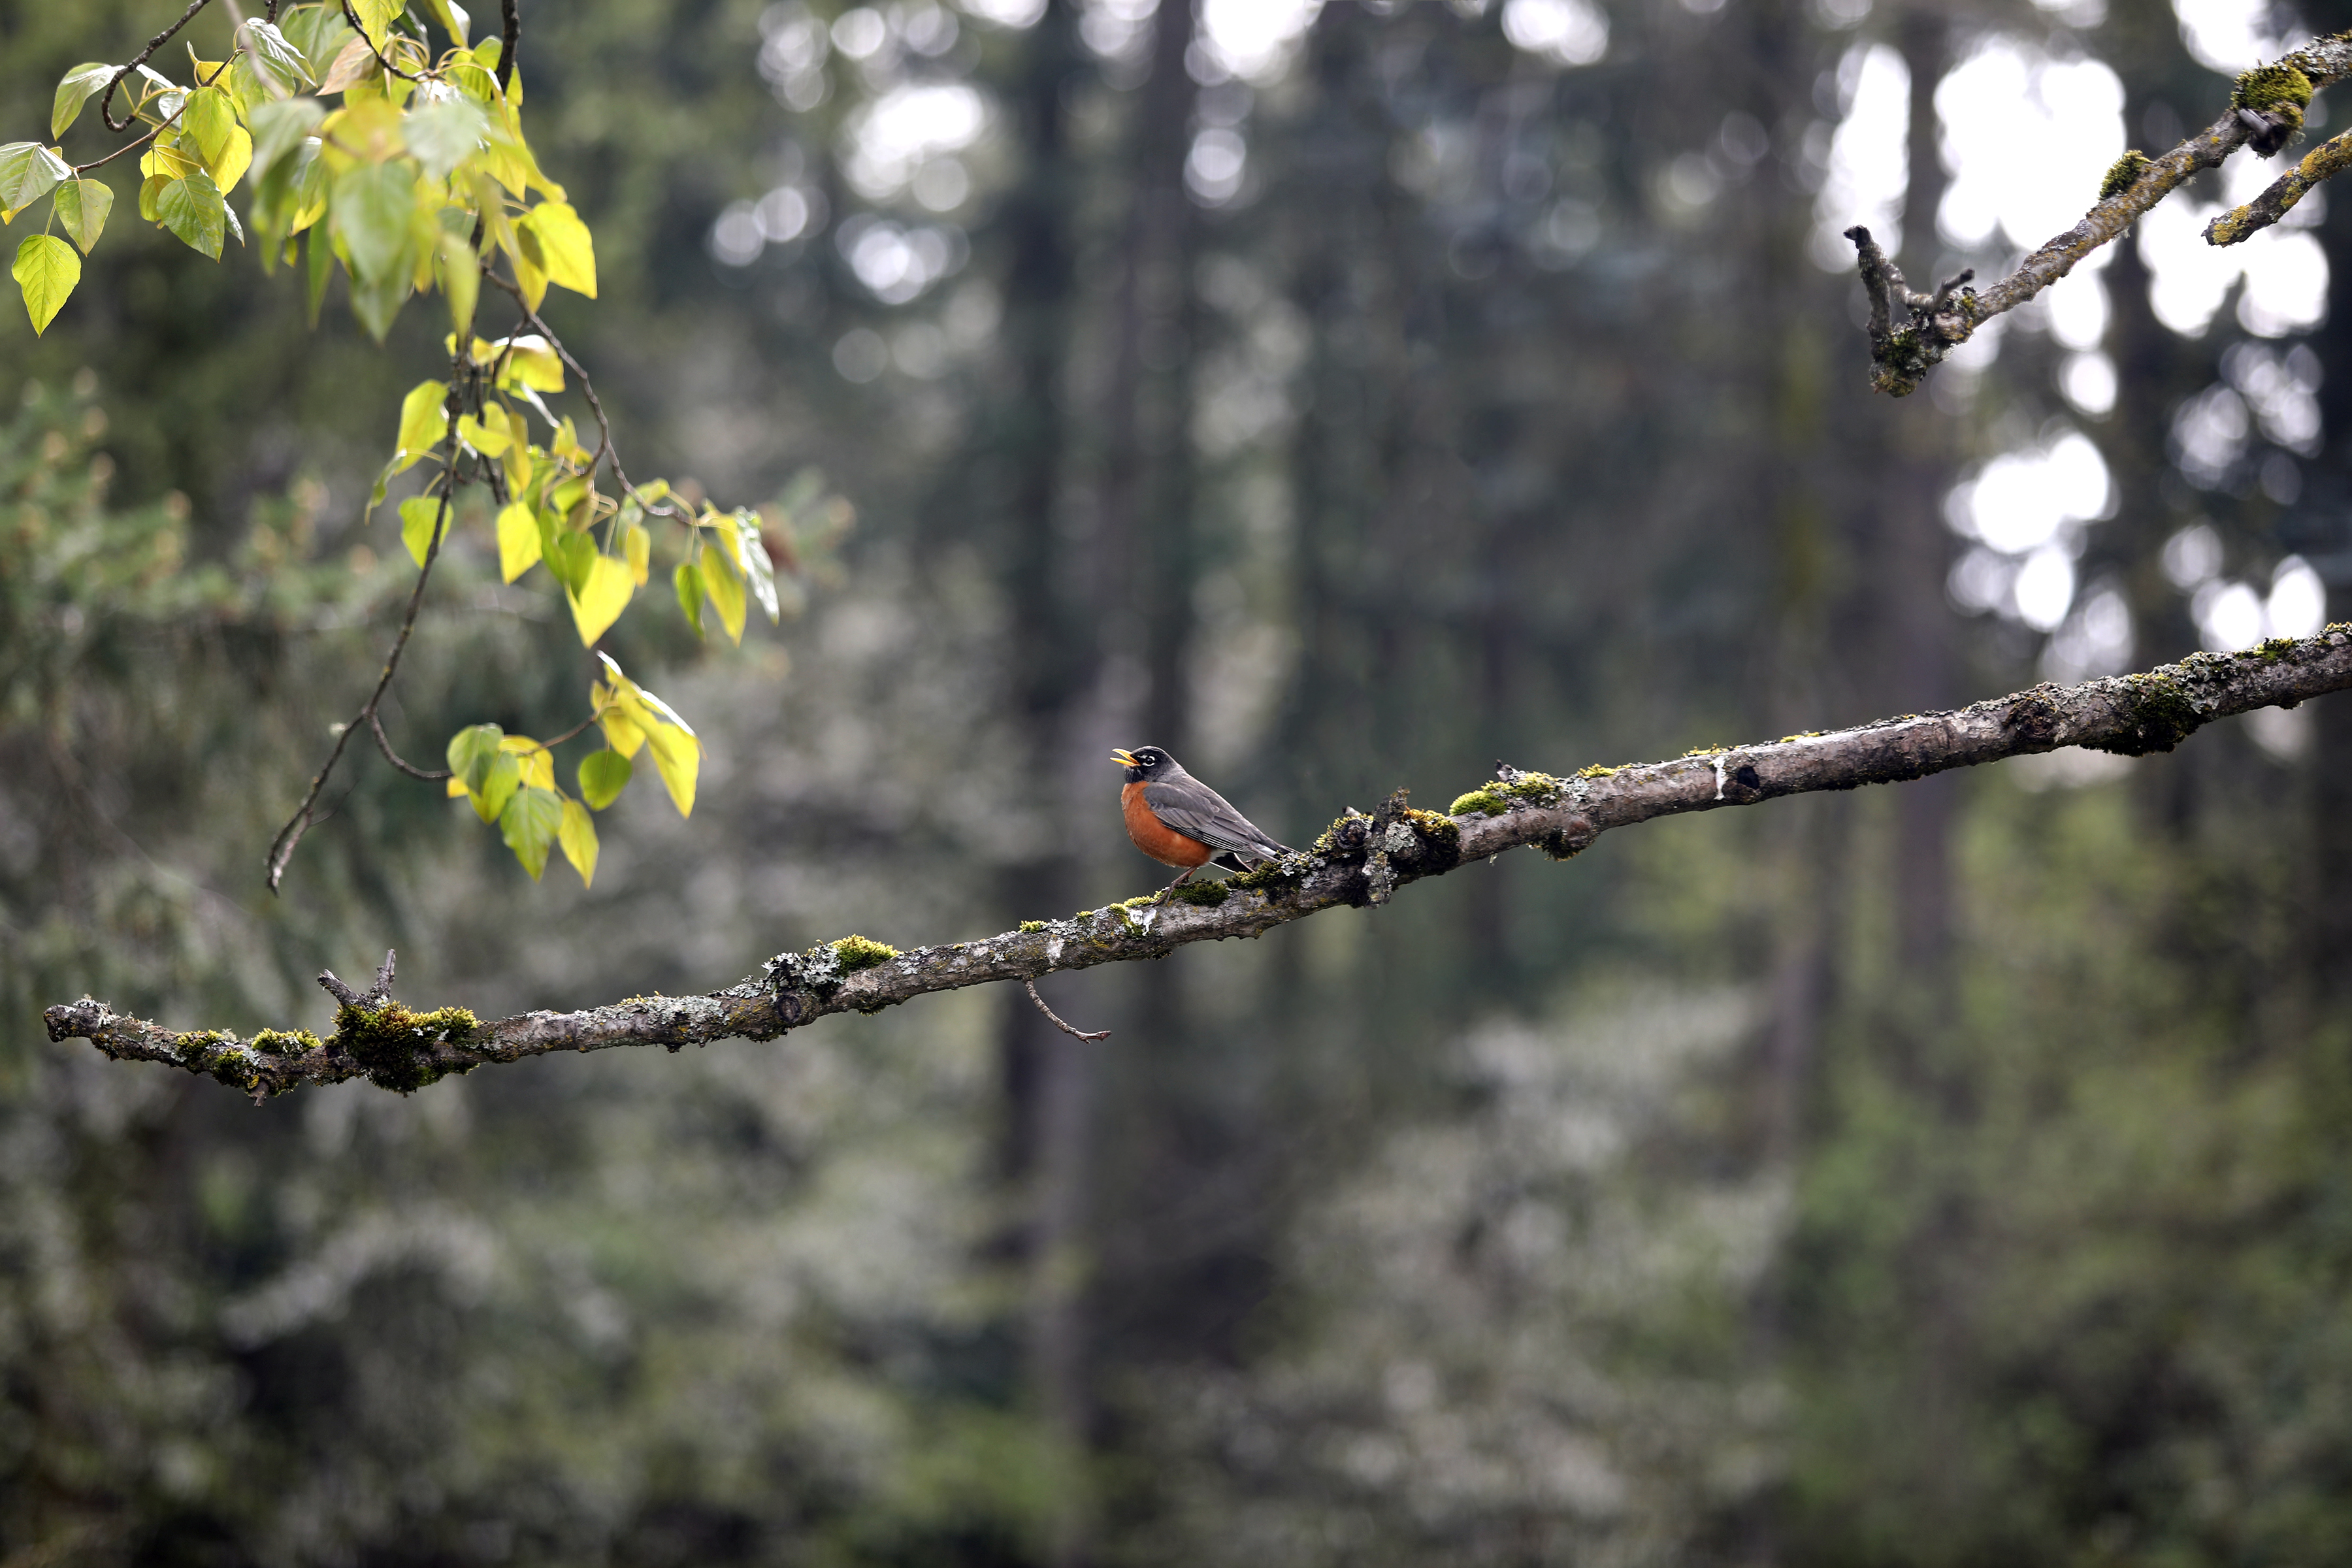 A robin perched in a tree in a wooded setting.